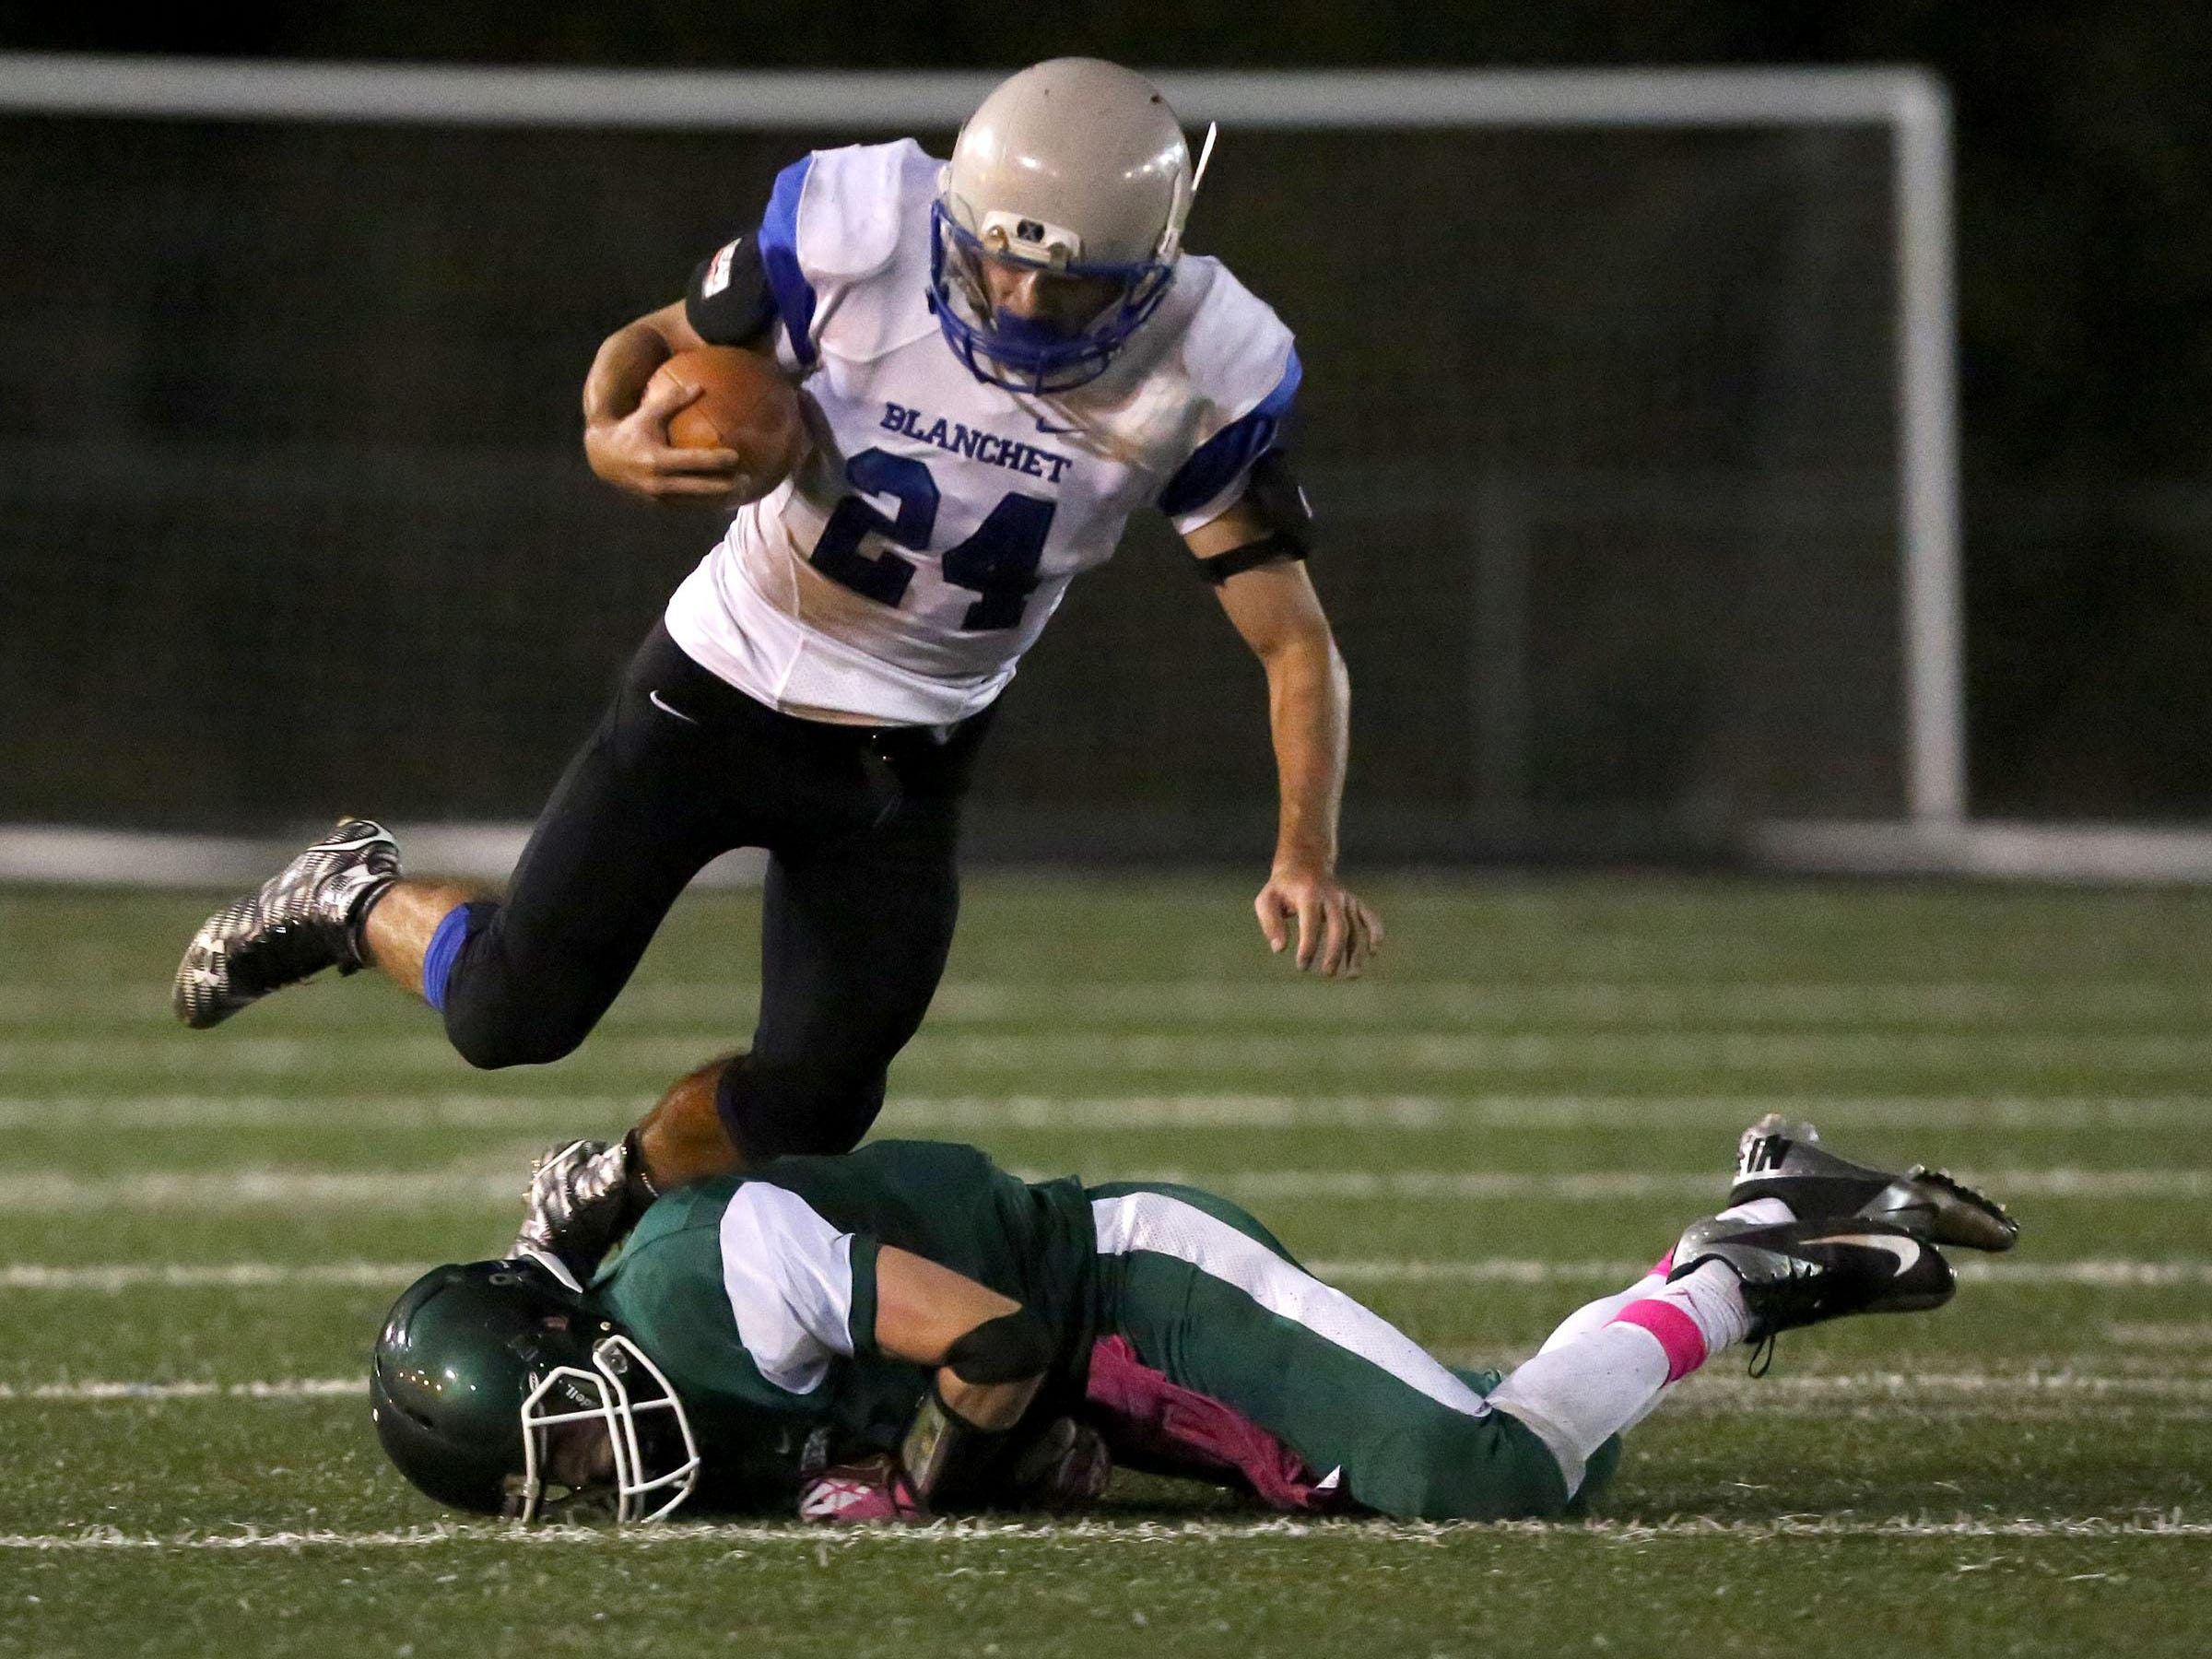 Salem Academy hosts Blanchet for their football game on Friday, Oct. 16, 2015, in Salem, Ore.